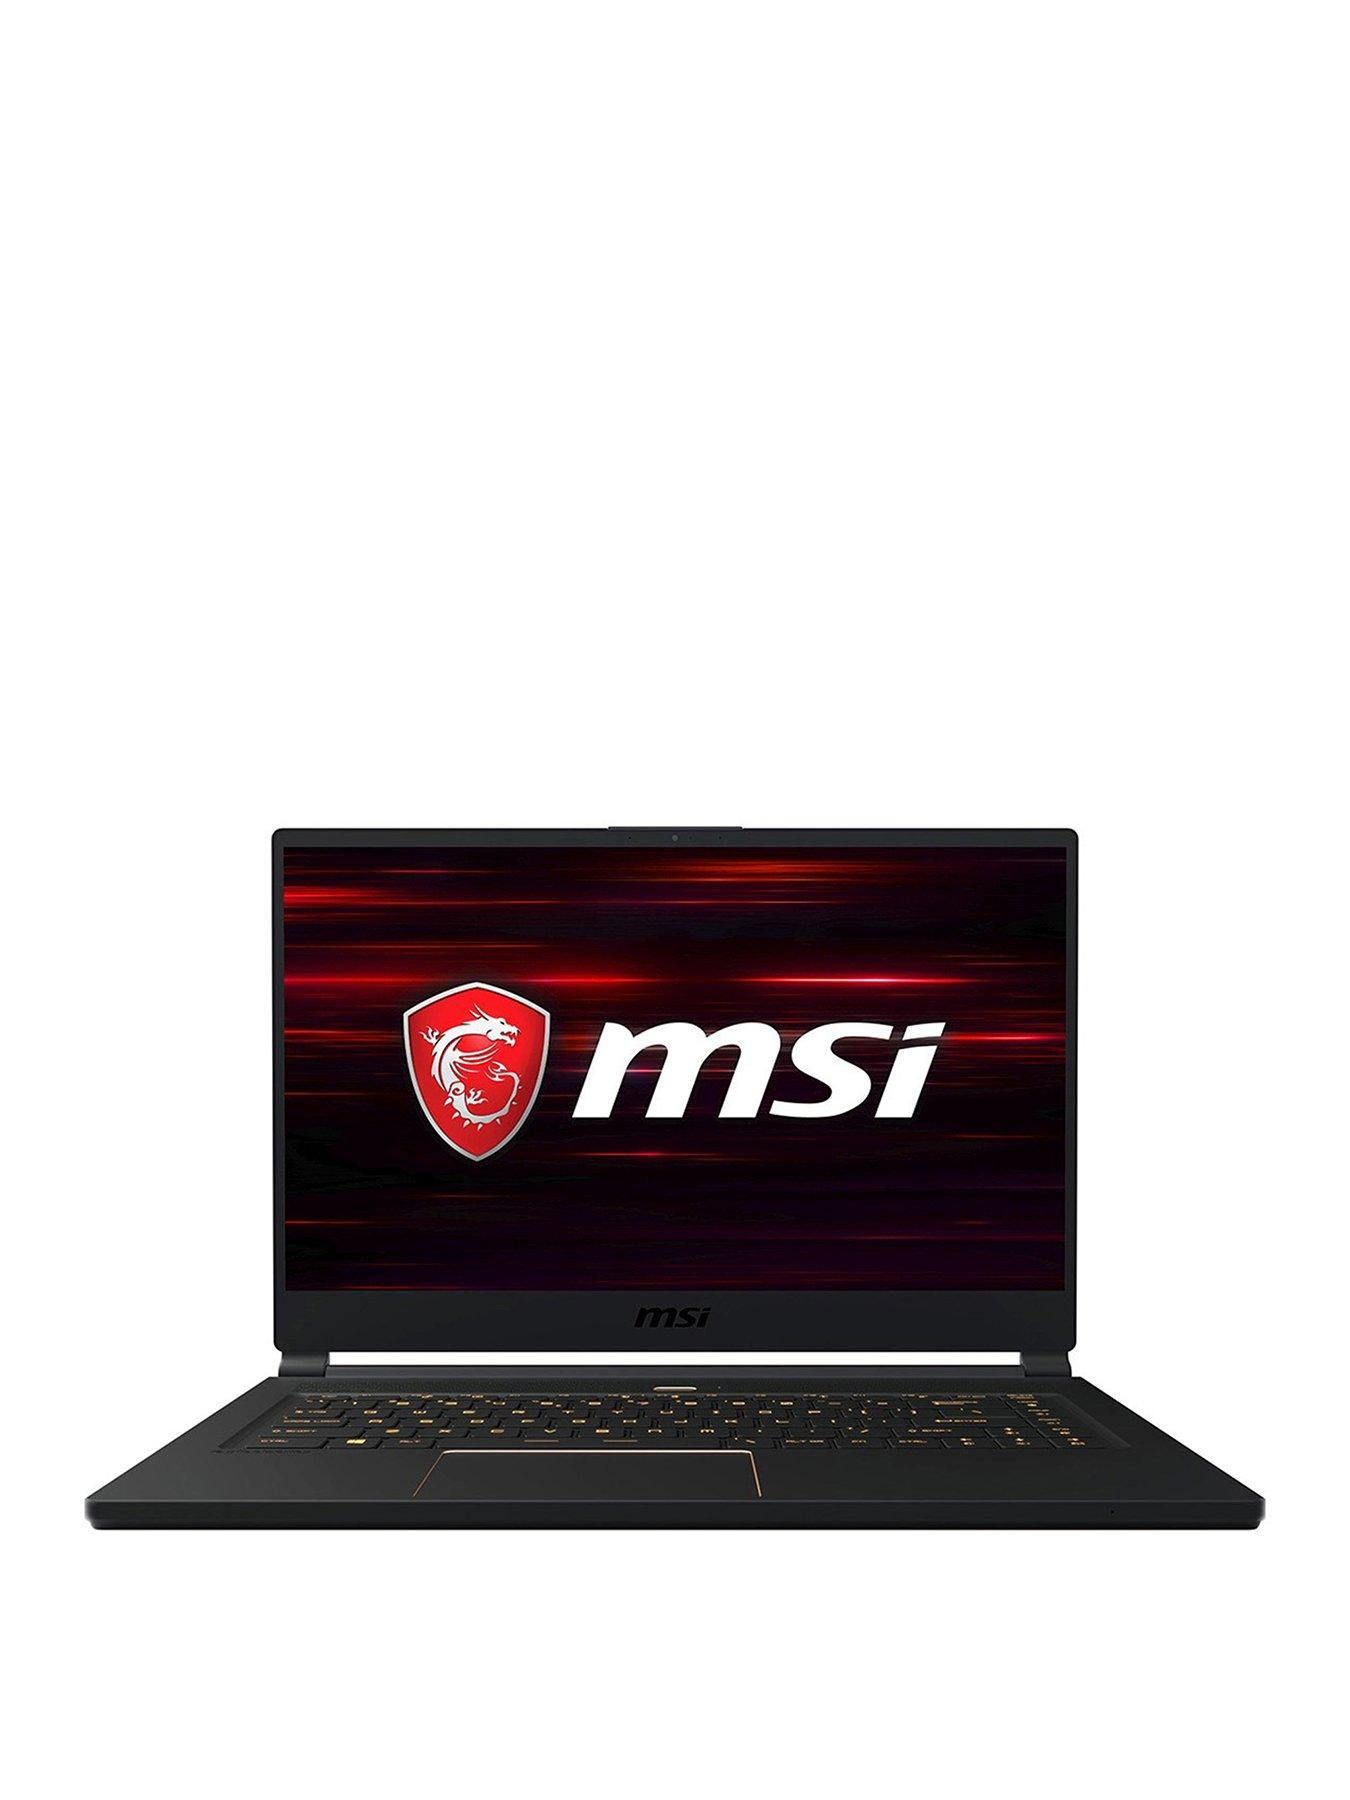 MSI GS65 Stealth 8RE-214UK Intel Core i7, 16Gb RAM, 256Gb SSD, 15.6 inch FHD, VR-Ready Gaming Laptop with GeForce GTX 1060 6Gb Graphics + Call of Duty Black Ops 4